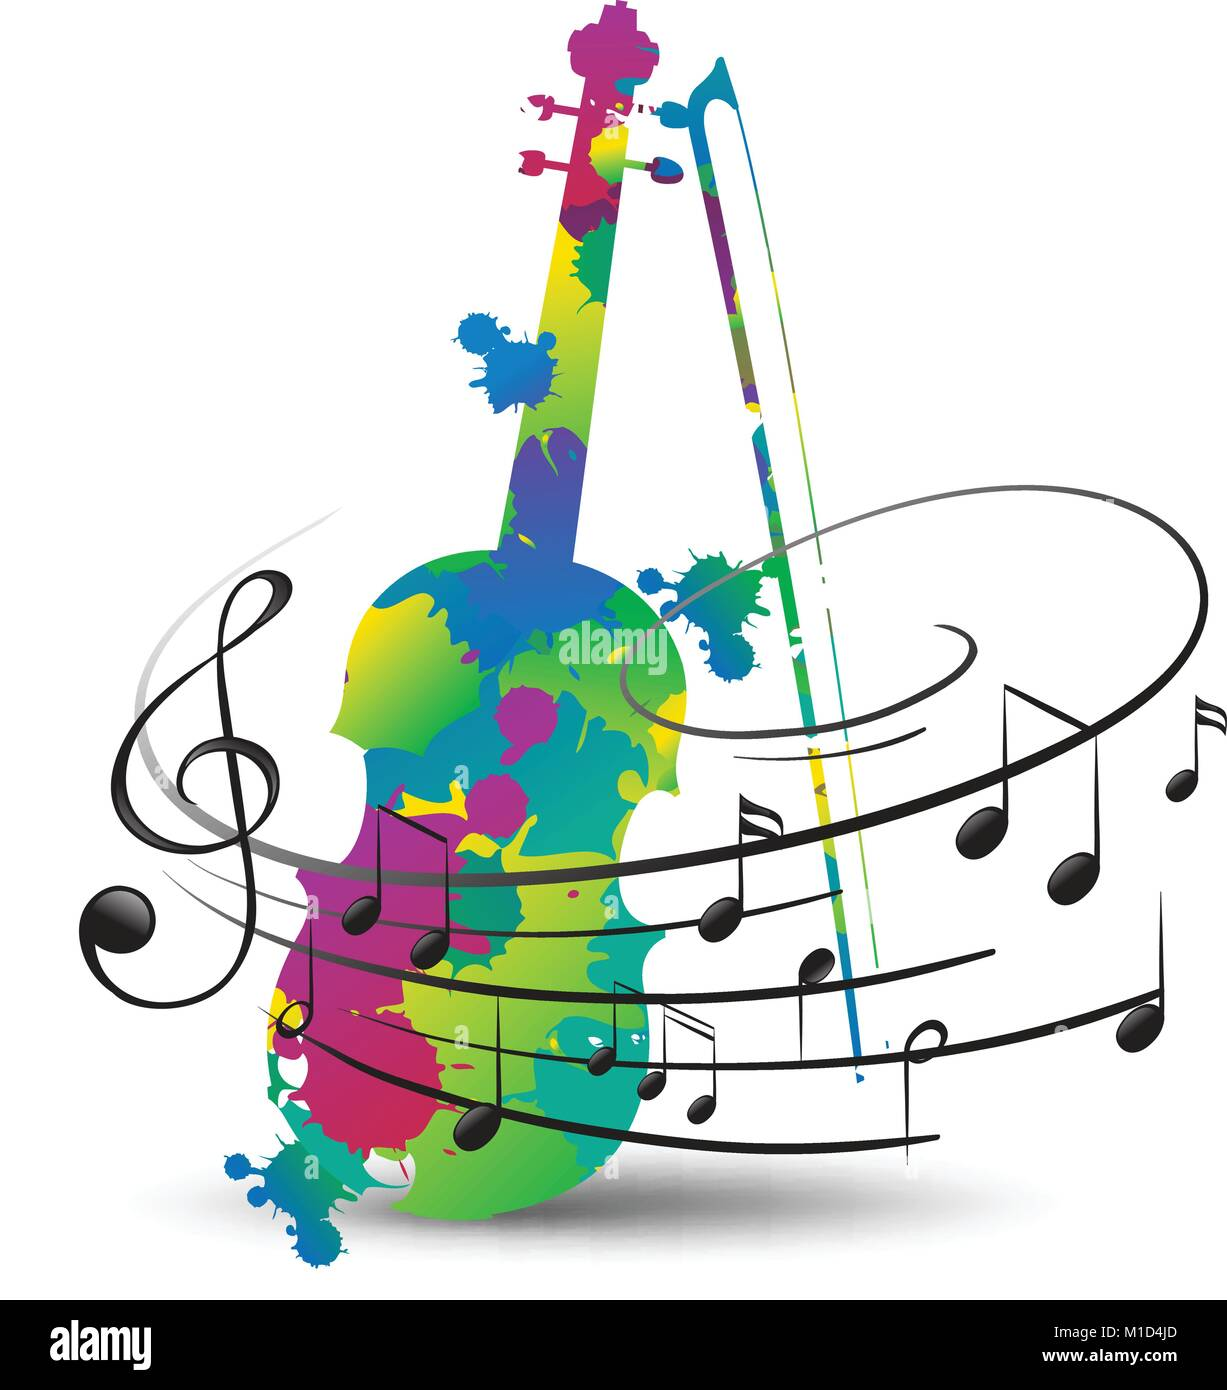 Colorful violin and music notes on white illustration for Note musicali dwg